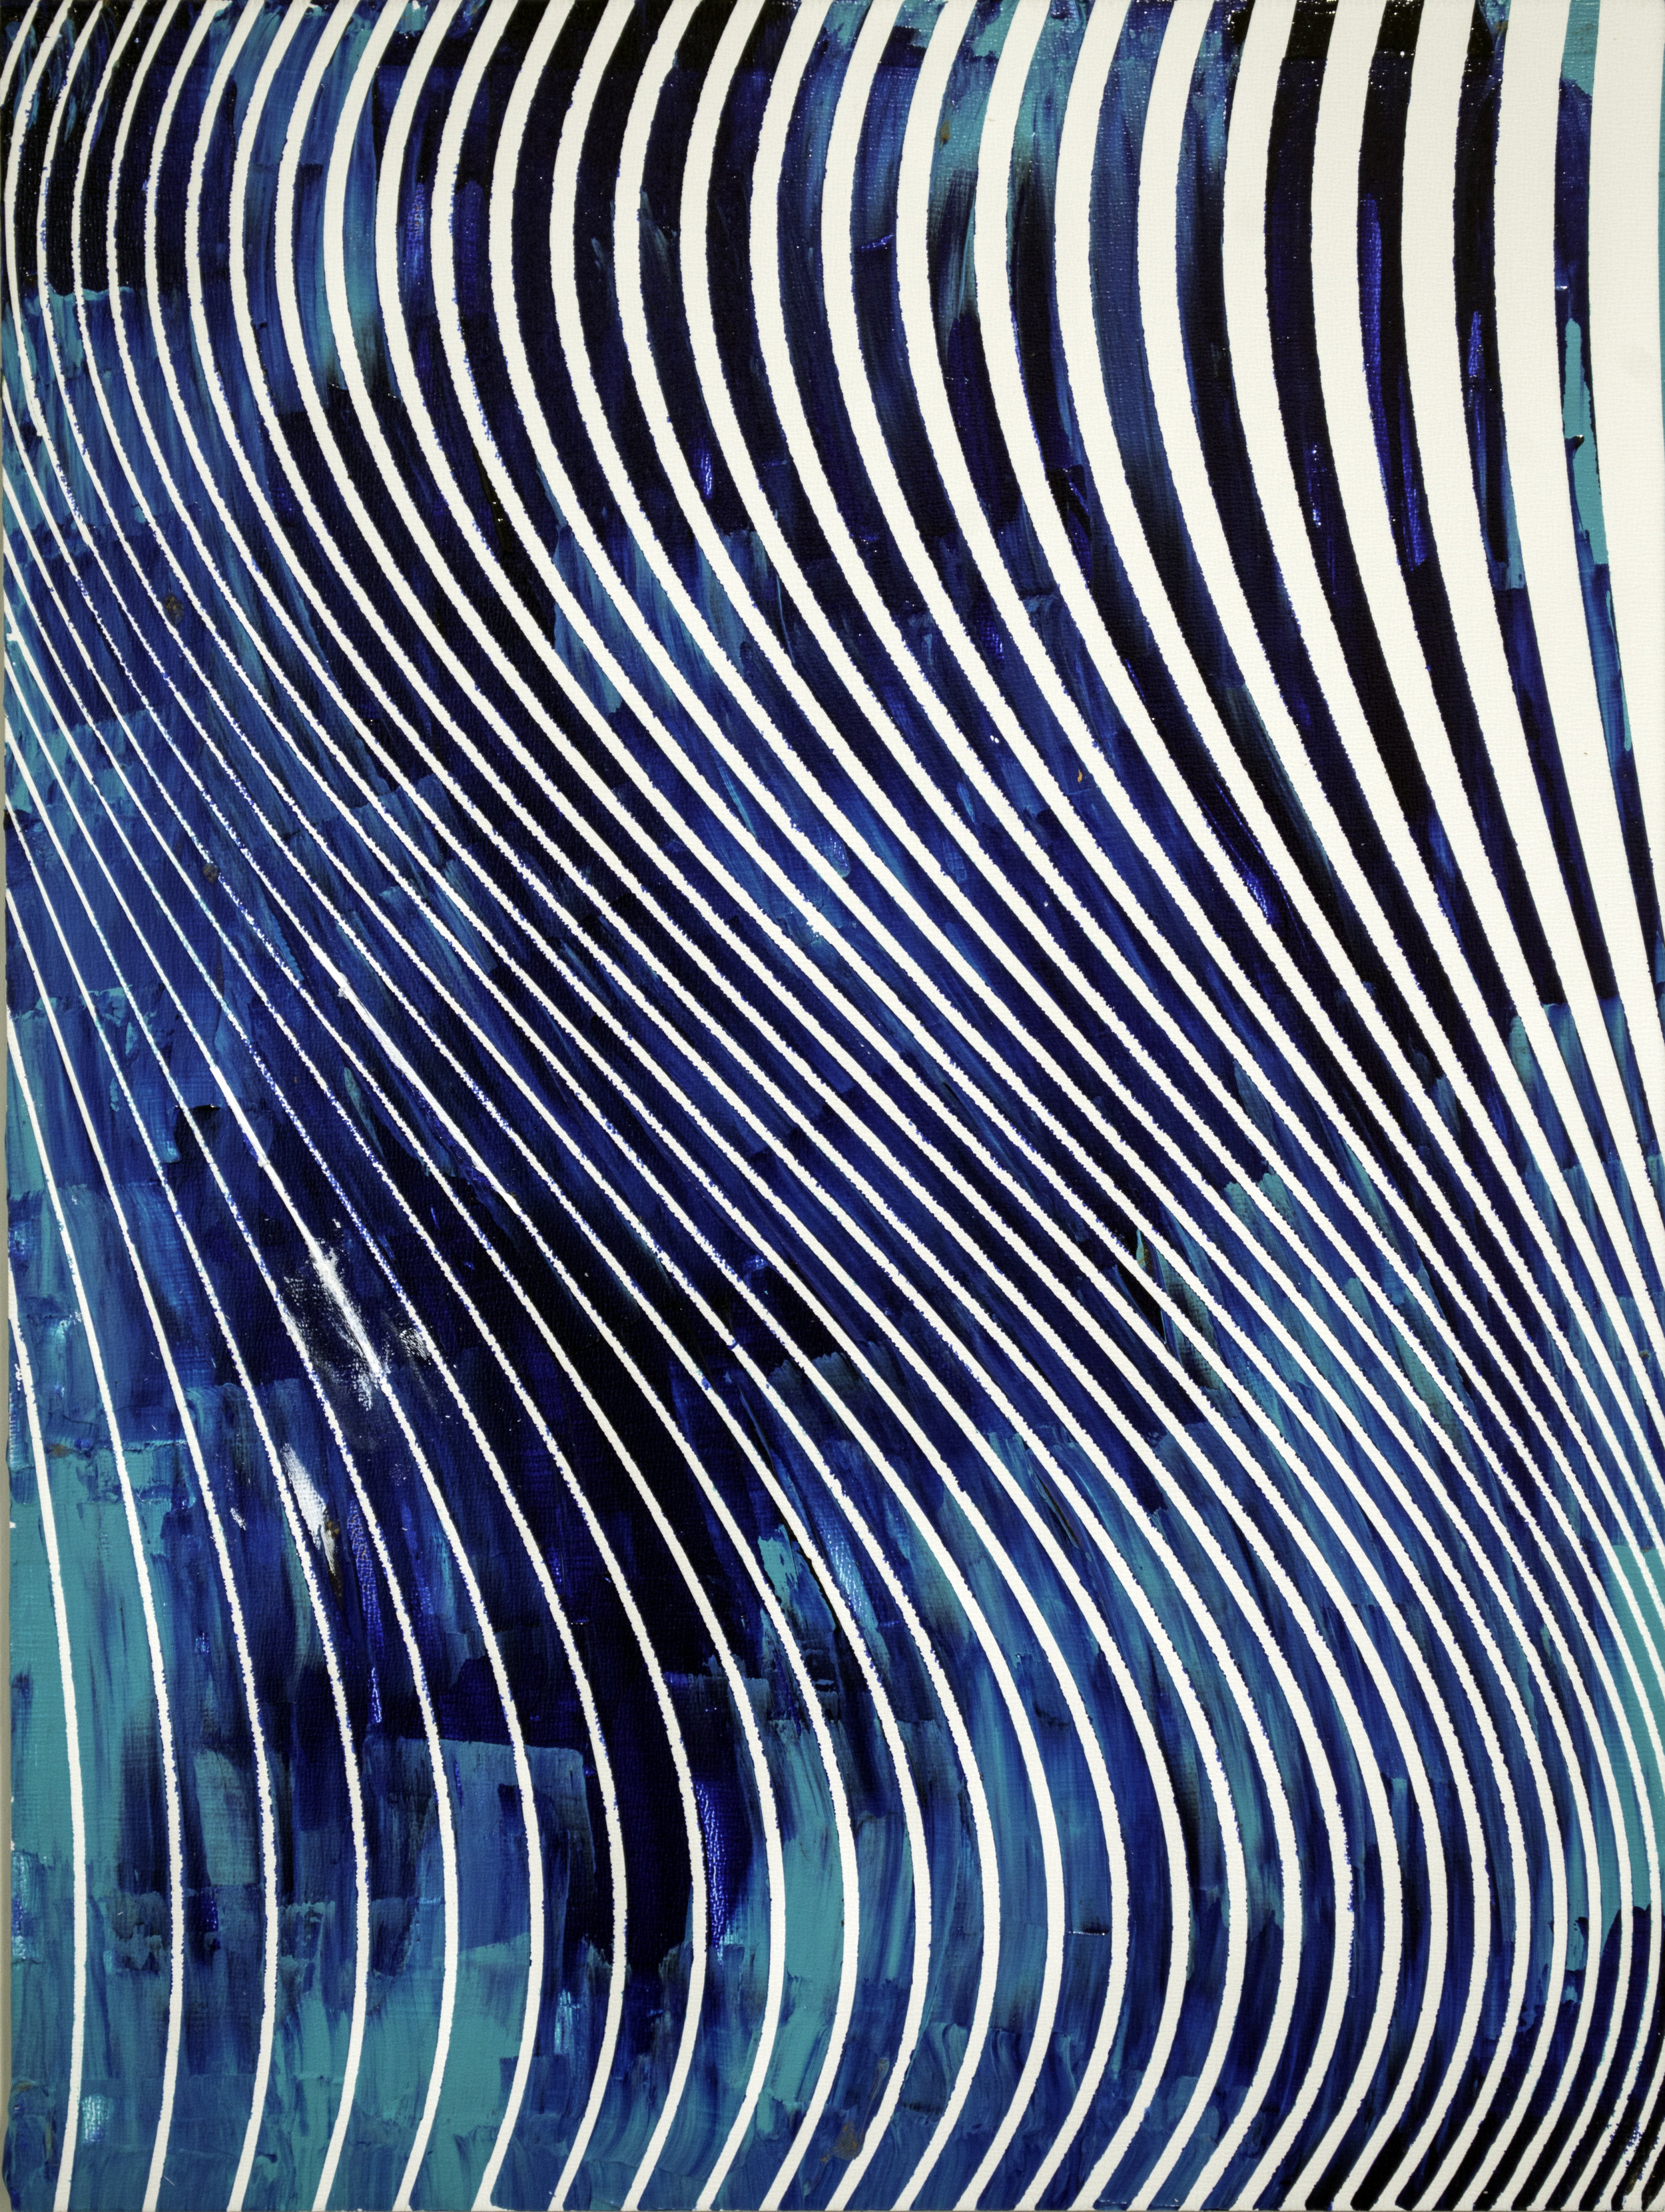 HUE Gallery of Contemporary Art - Sean Christopher Ward - The Oceanic Current - Acrylic on MDF - 12x16 - 2019 - $375.jpg